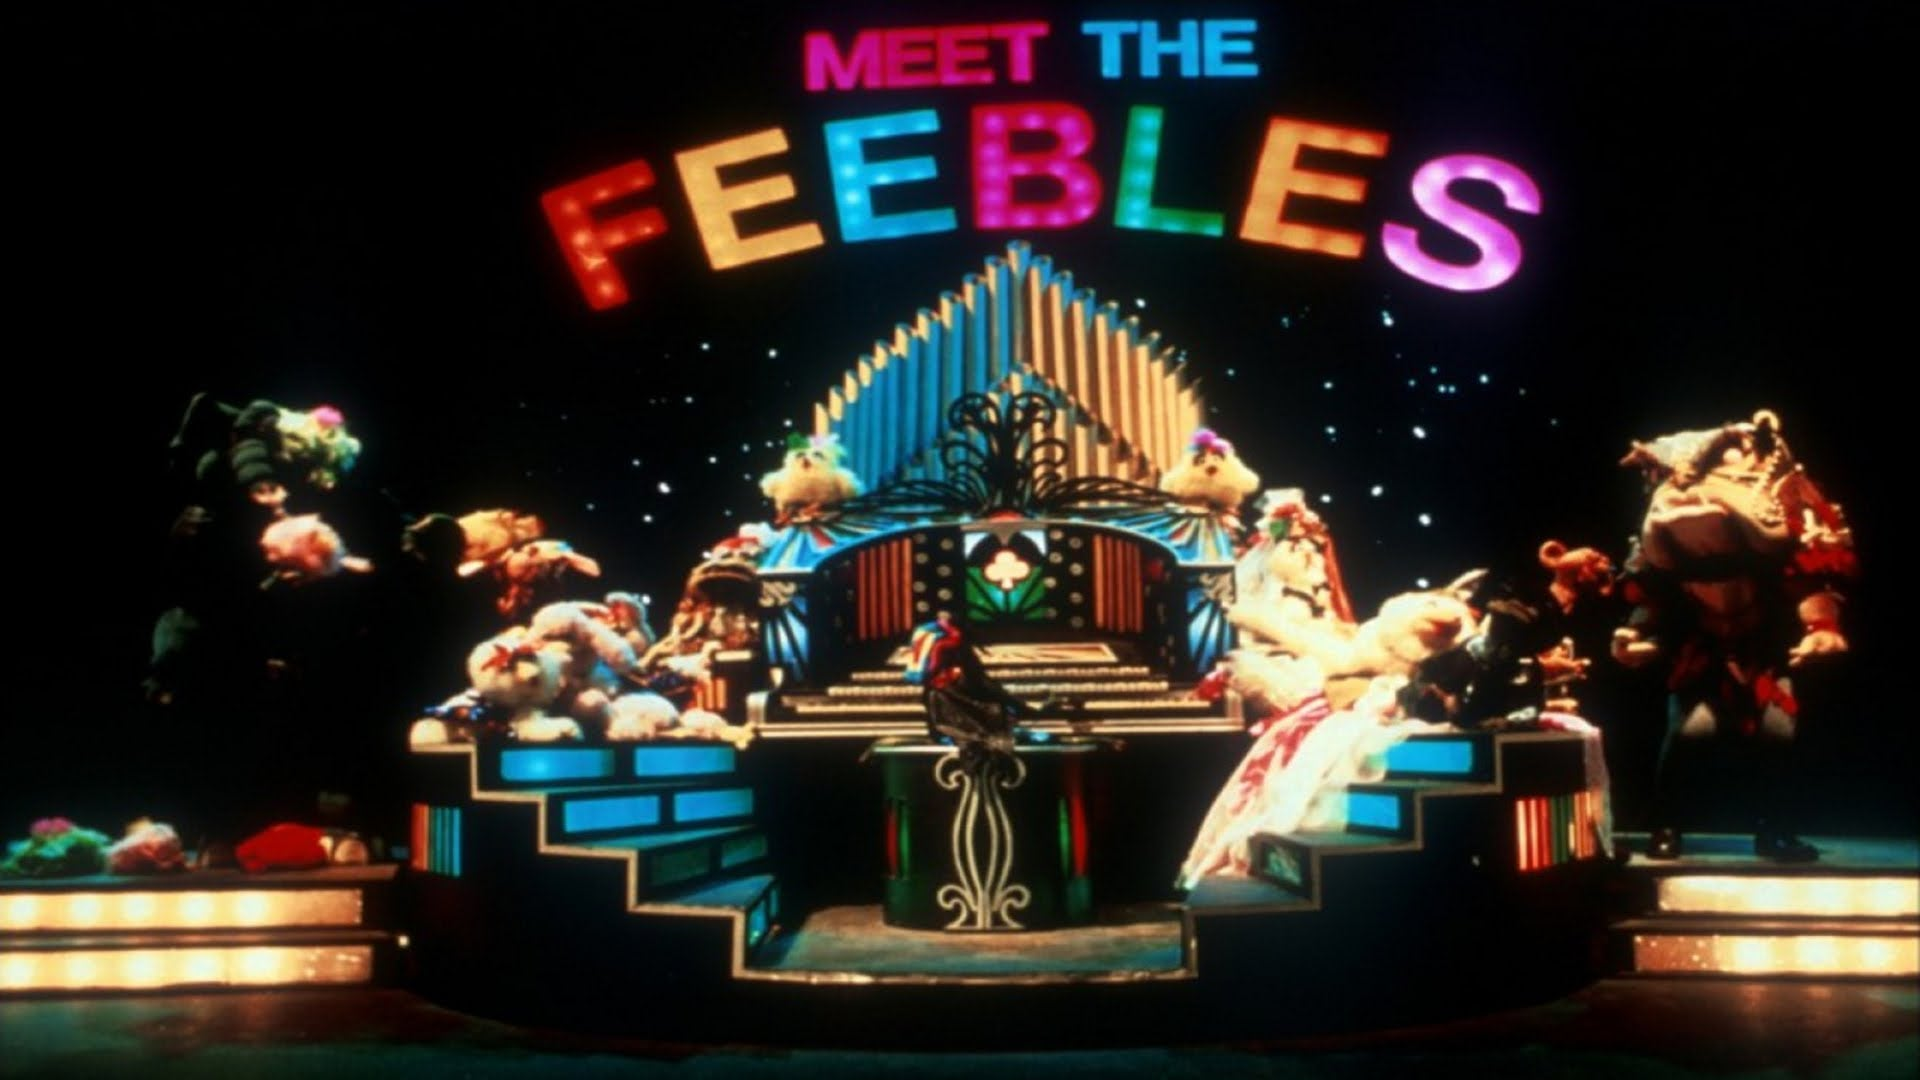 Peter Jackson's Gross-Out Puppet Film, Meet The Feebles, Is More Disturbing Now Than Ever Before